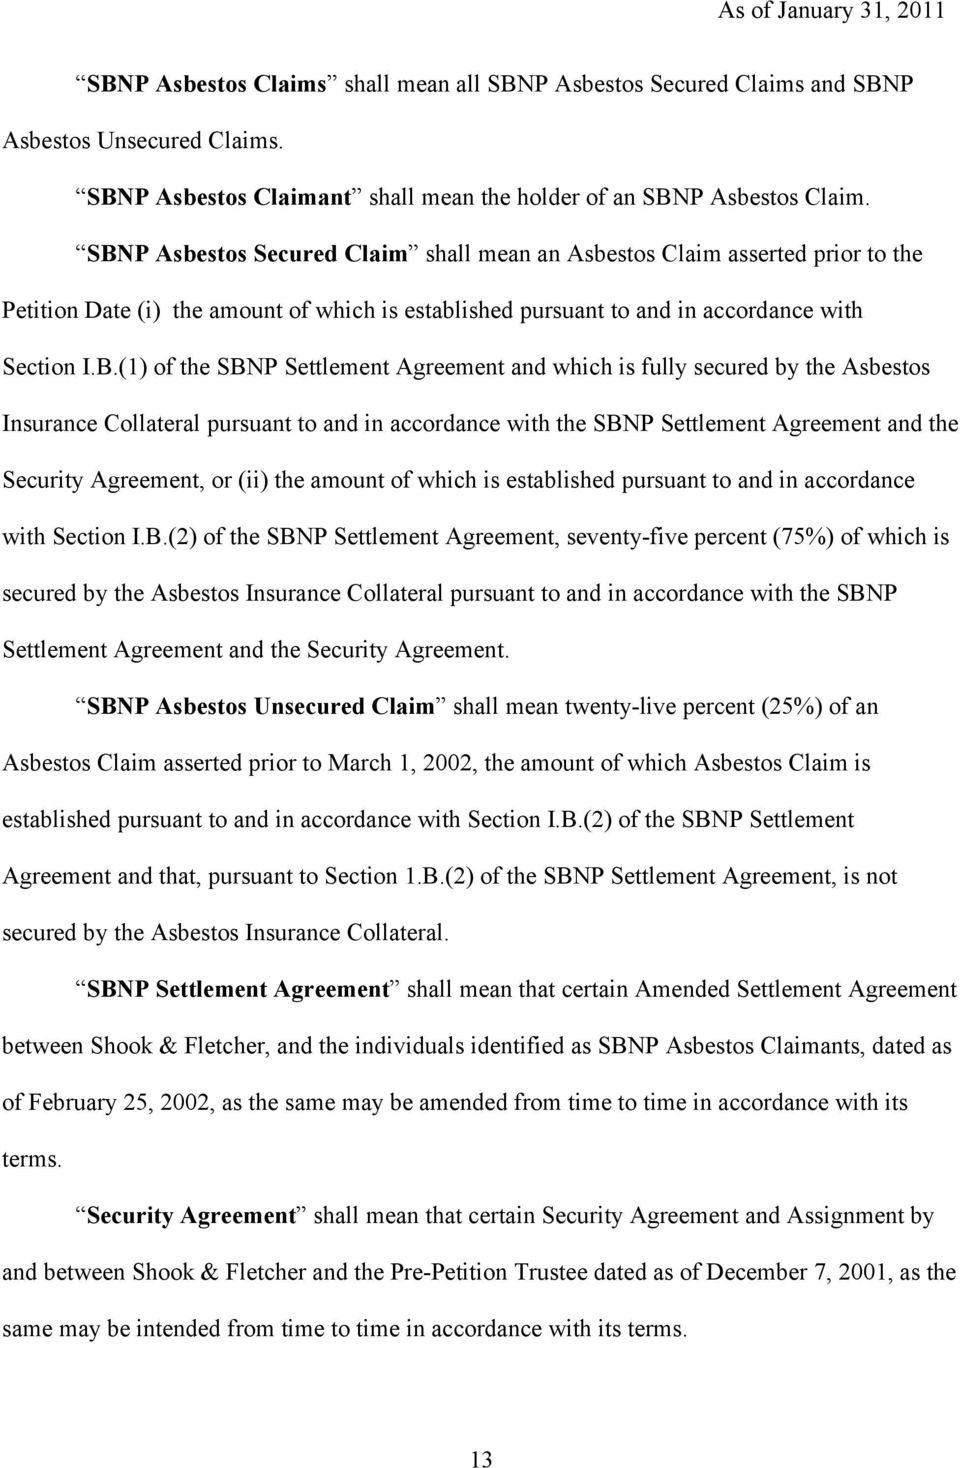 Settlement Agreement and which is fully secured by the Asbestos Insurance Collateral pursuant to and in accordance with the SBNP Settlement Agreement and the Security Agreement, or (ii) the amount of